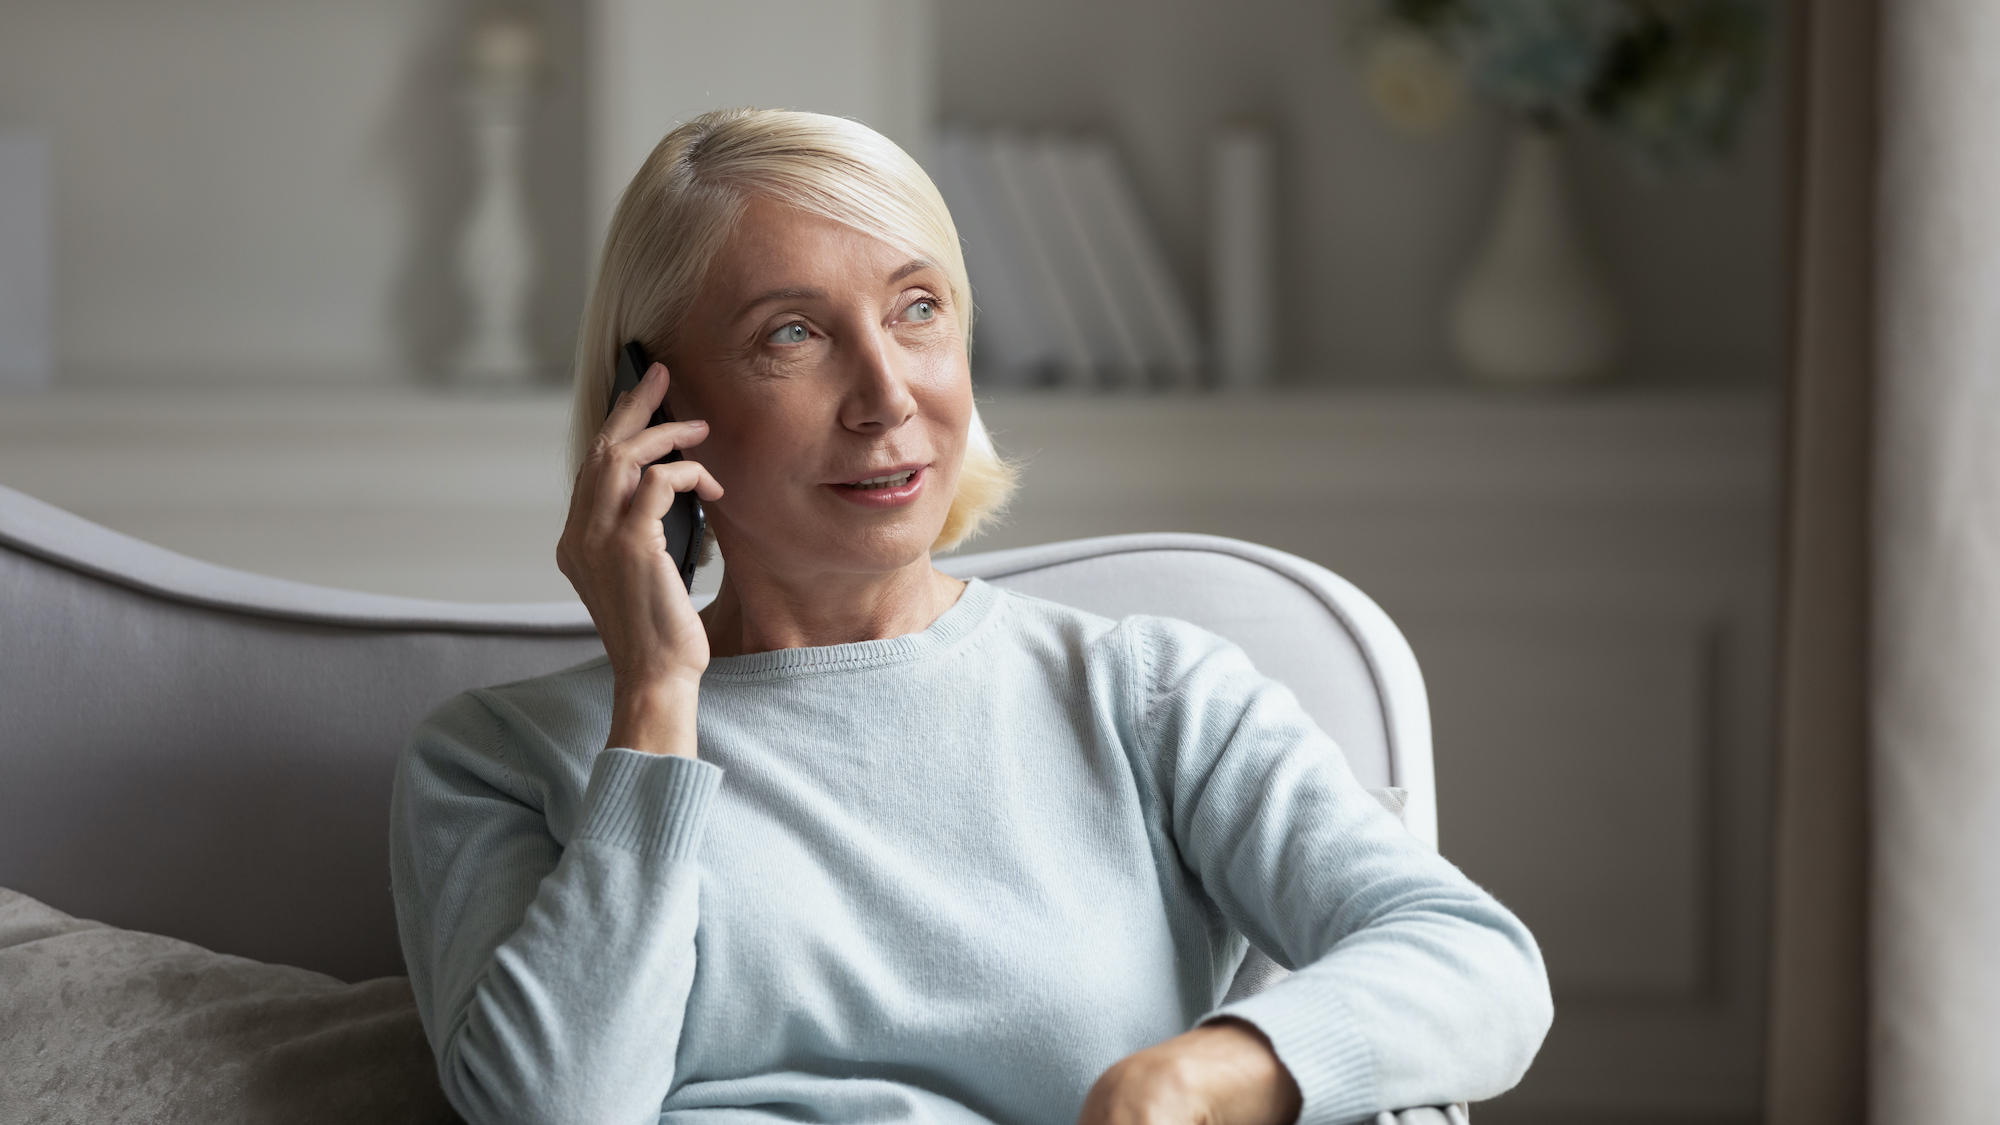 60s blonde woman sit on couch holds phone chatting with friend having pleasant distant conversation talking